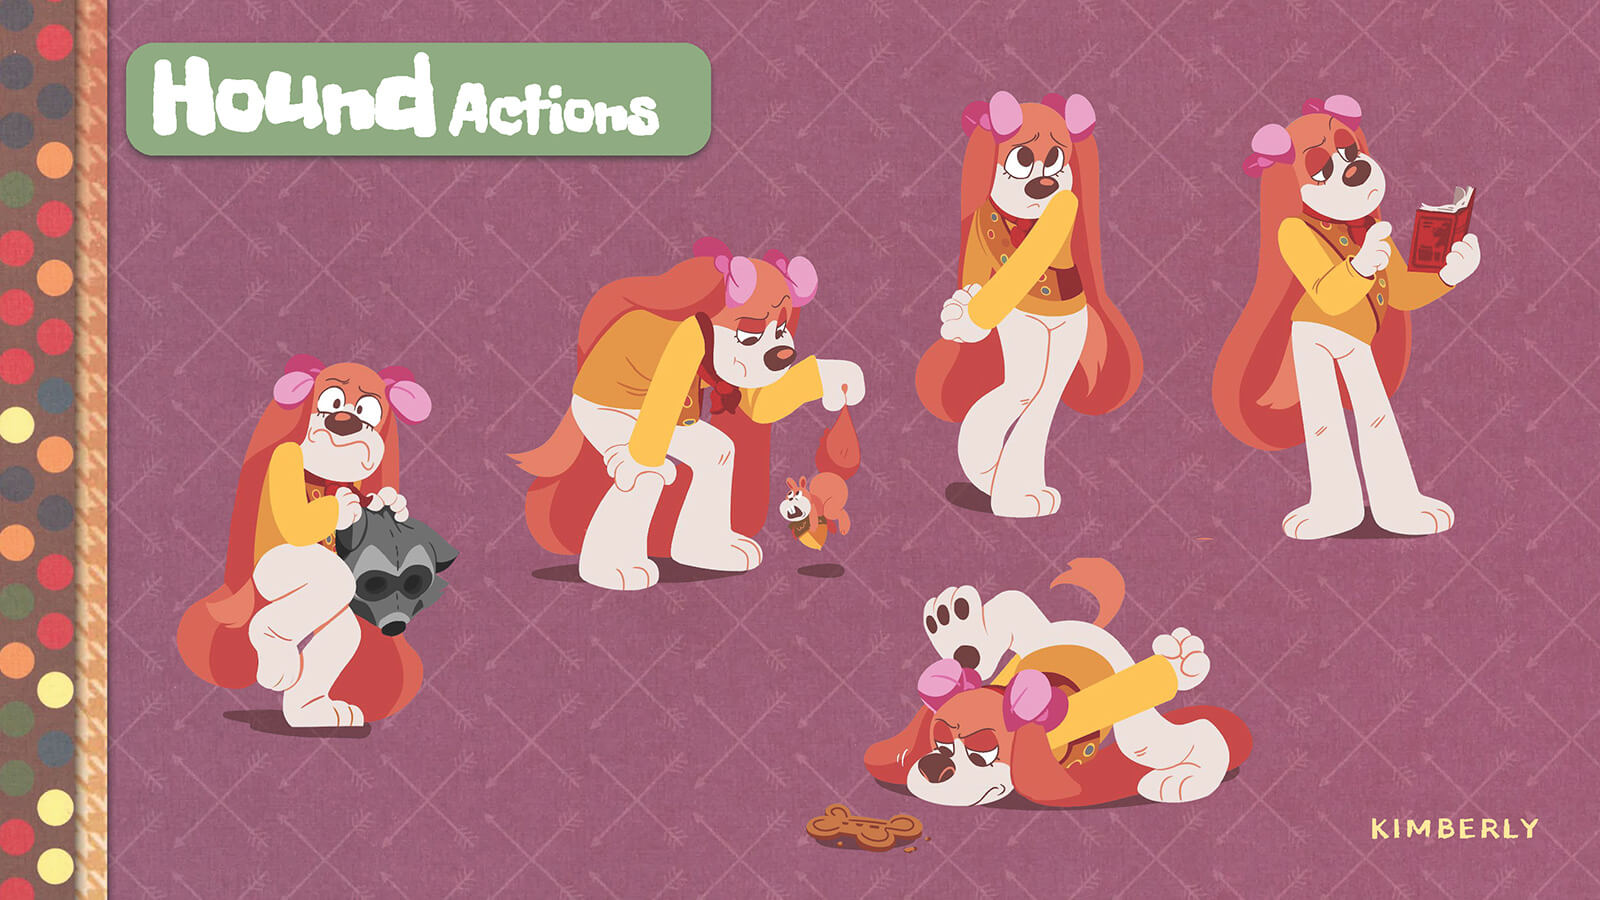 Sketches and examples of actions by the character Hound.